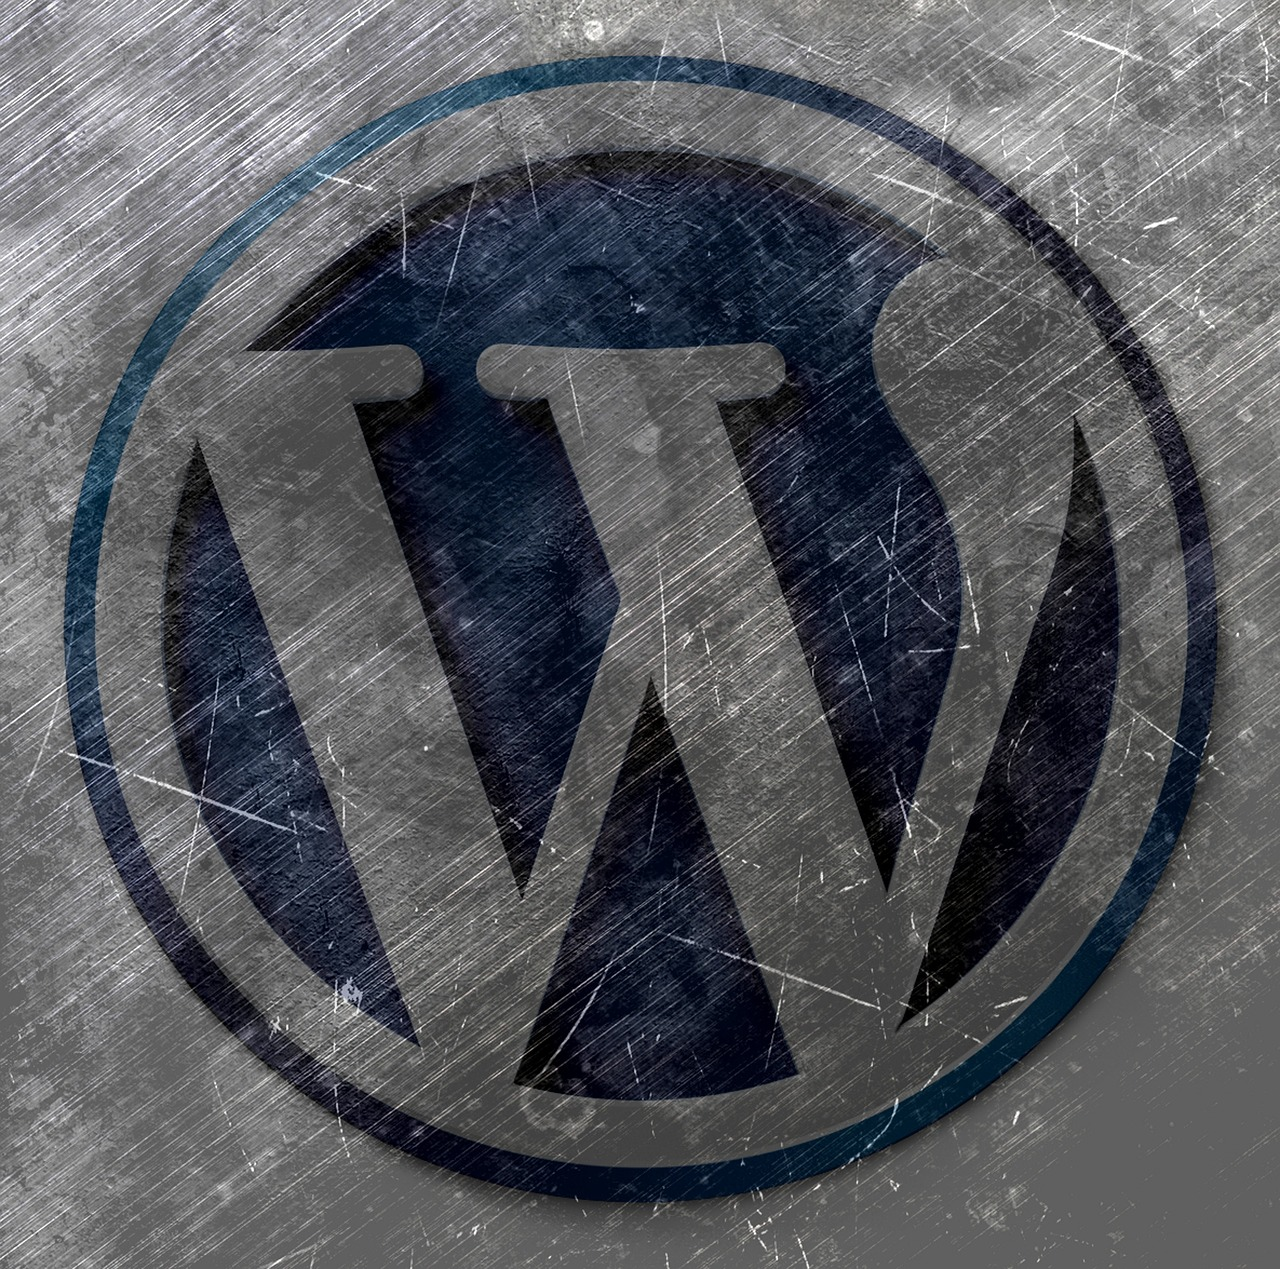 Wordpress,wordpress logo,wordpress icon,wordpress image,content management  system - free image from needpix.com